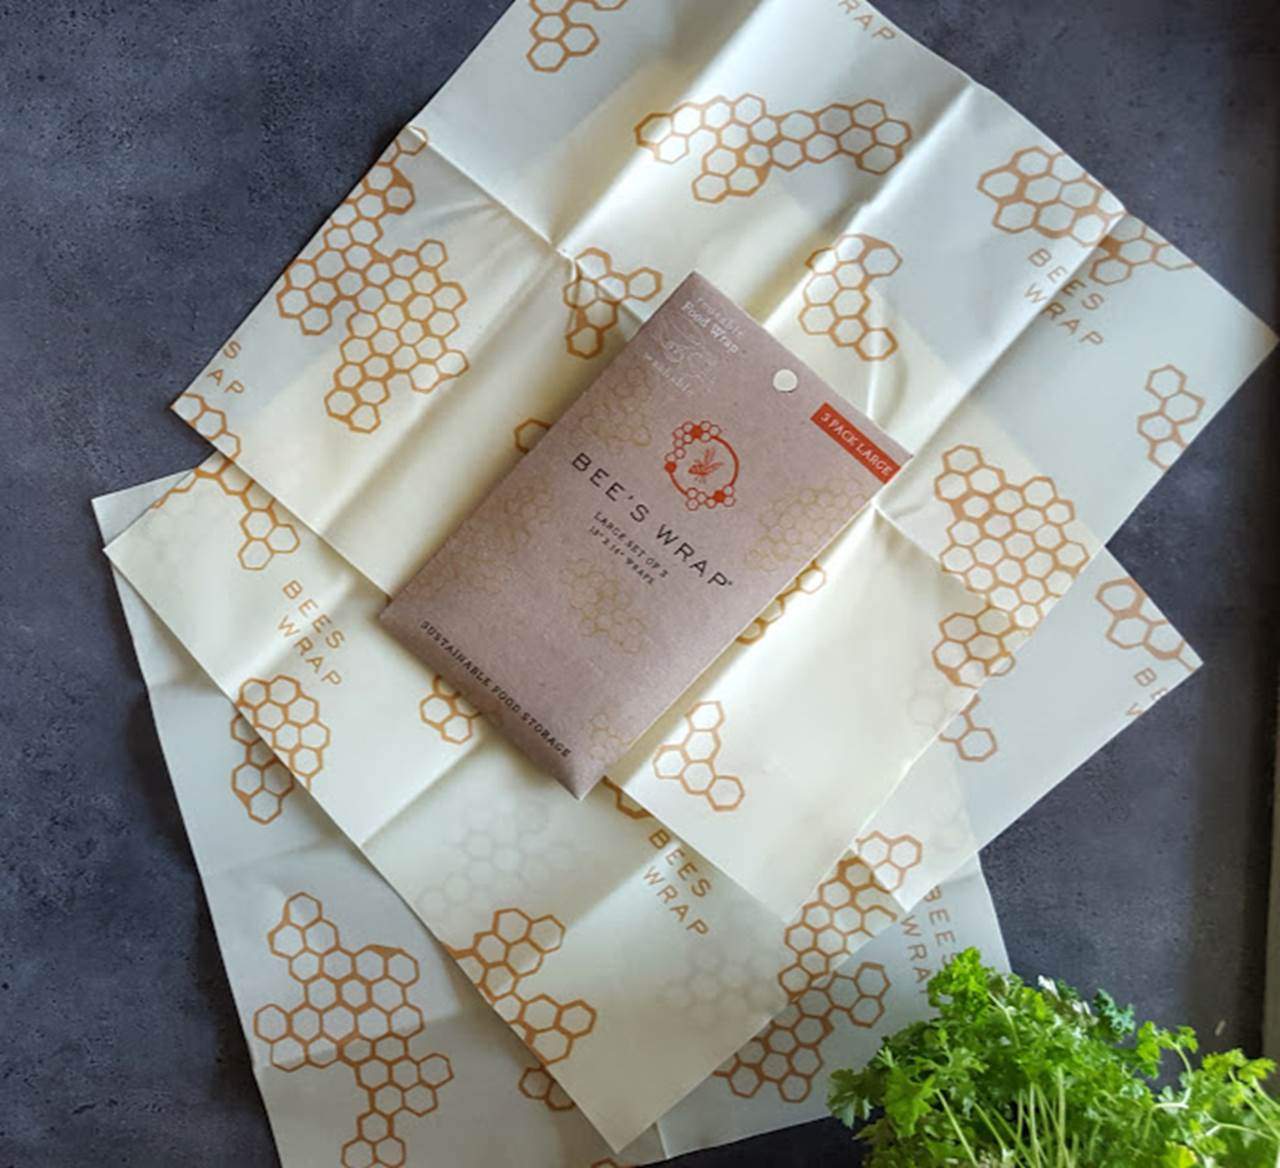 Bees Wrap - 3 ark Large